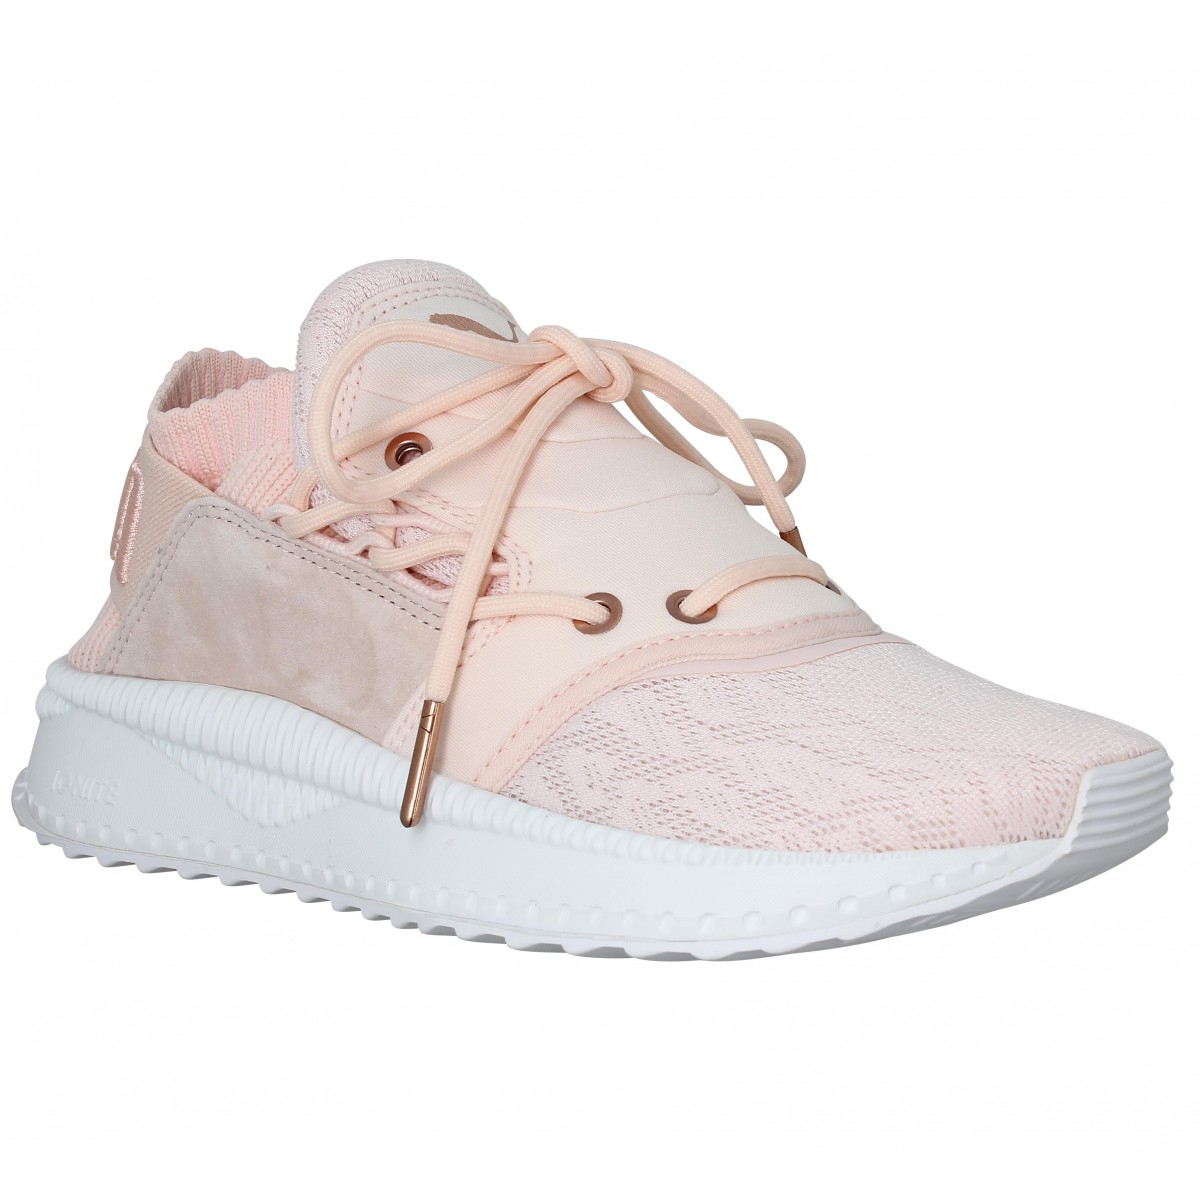 puma chaussures femme rose